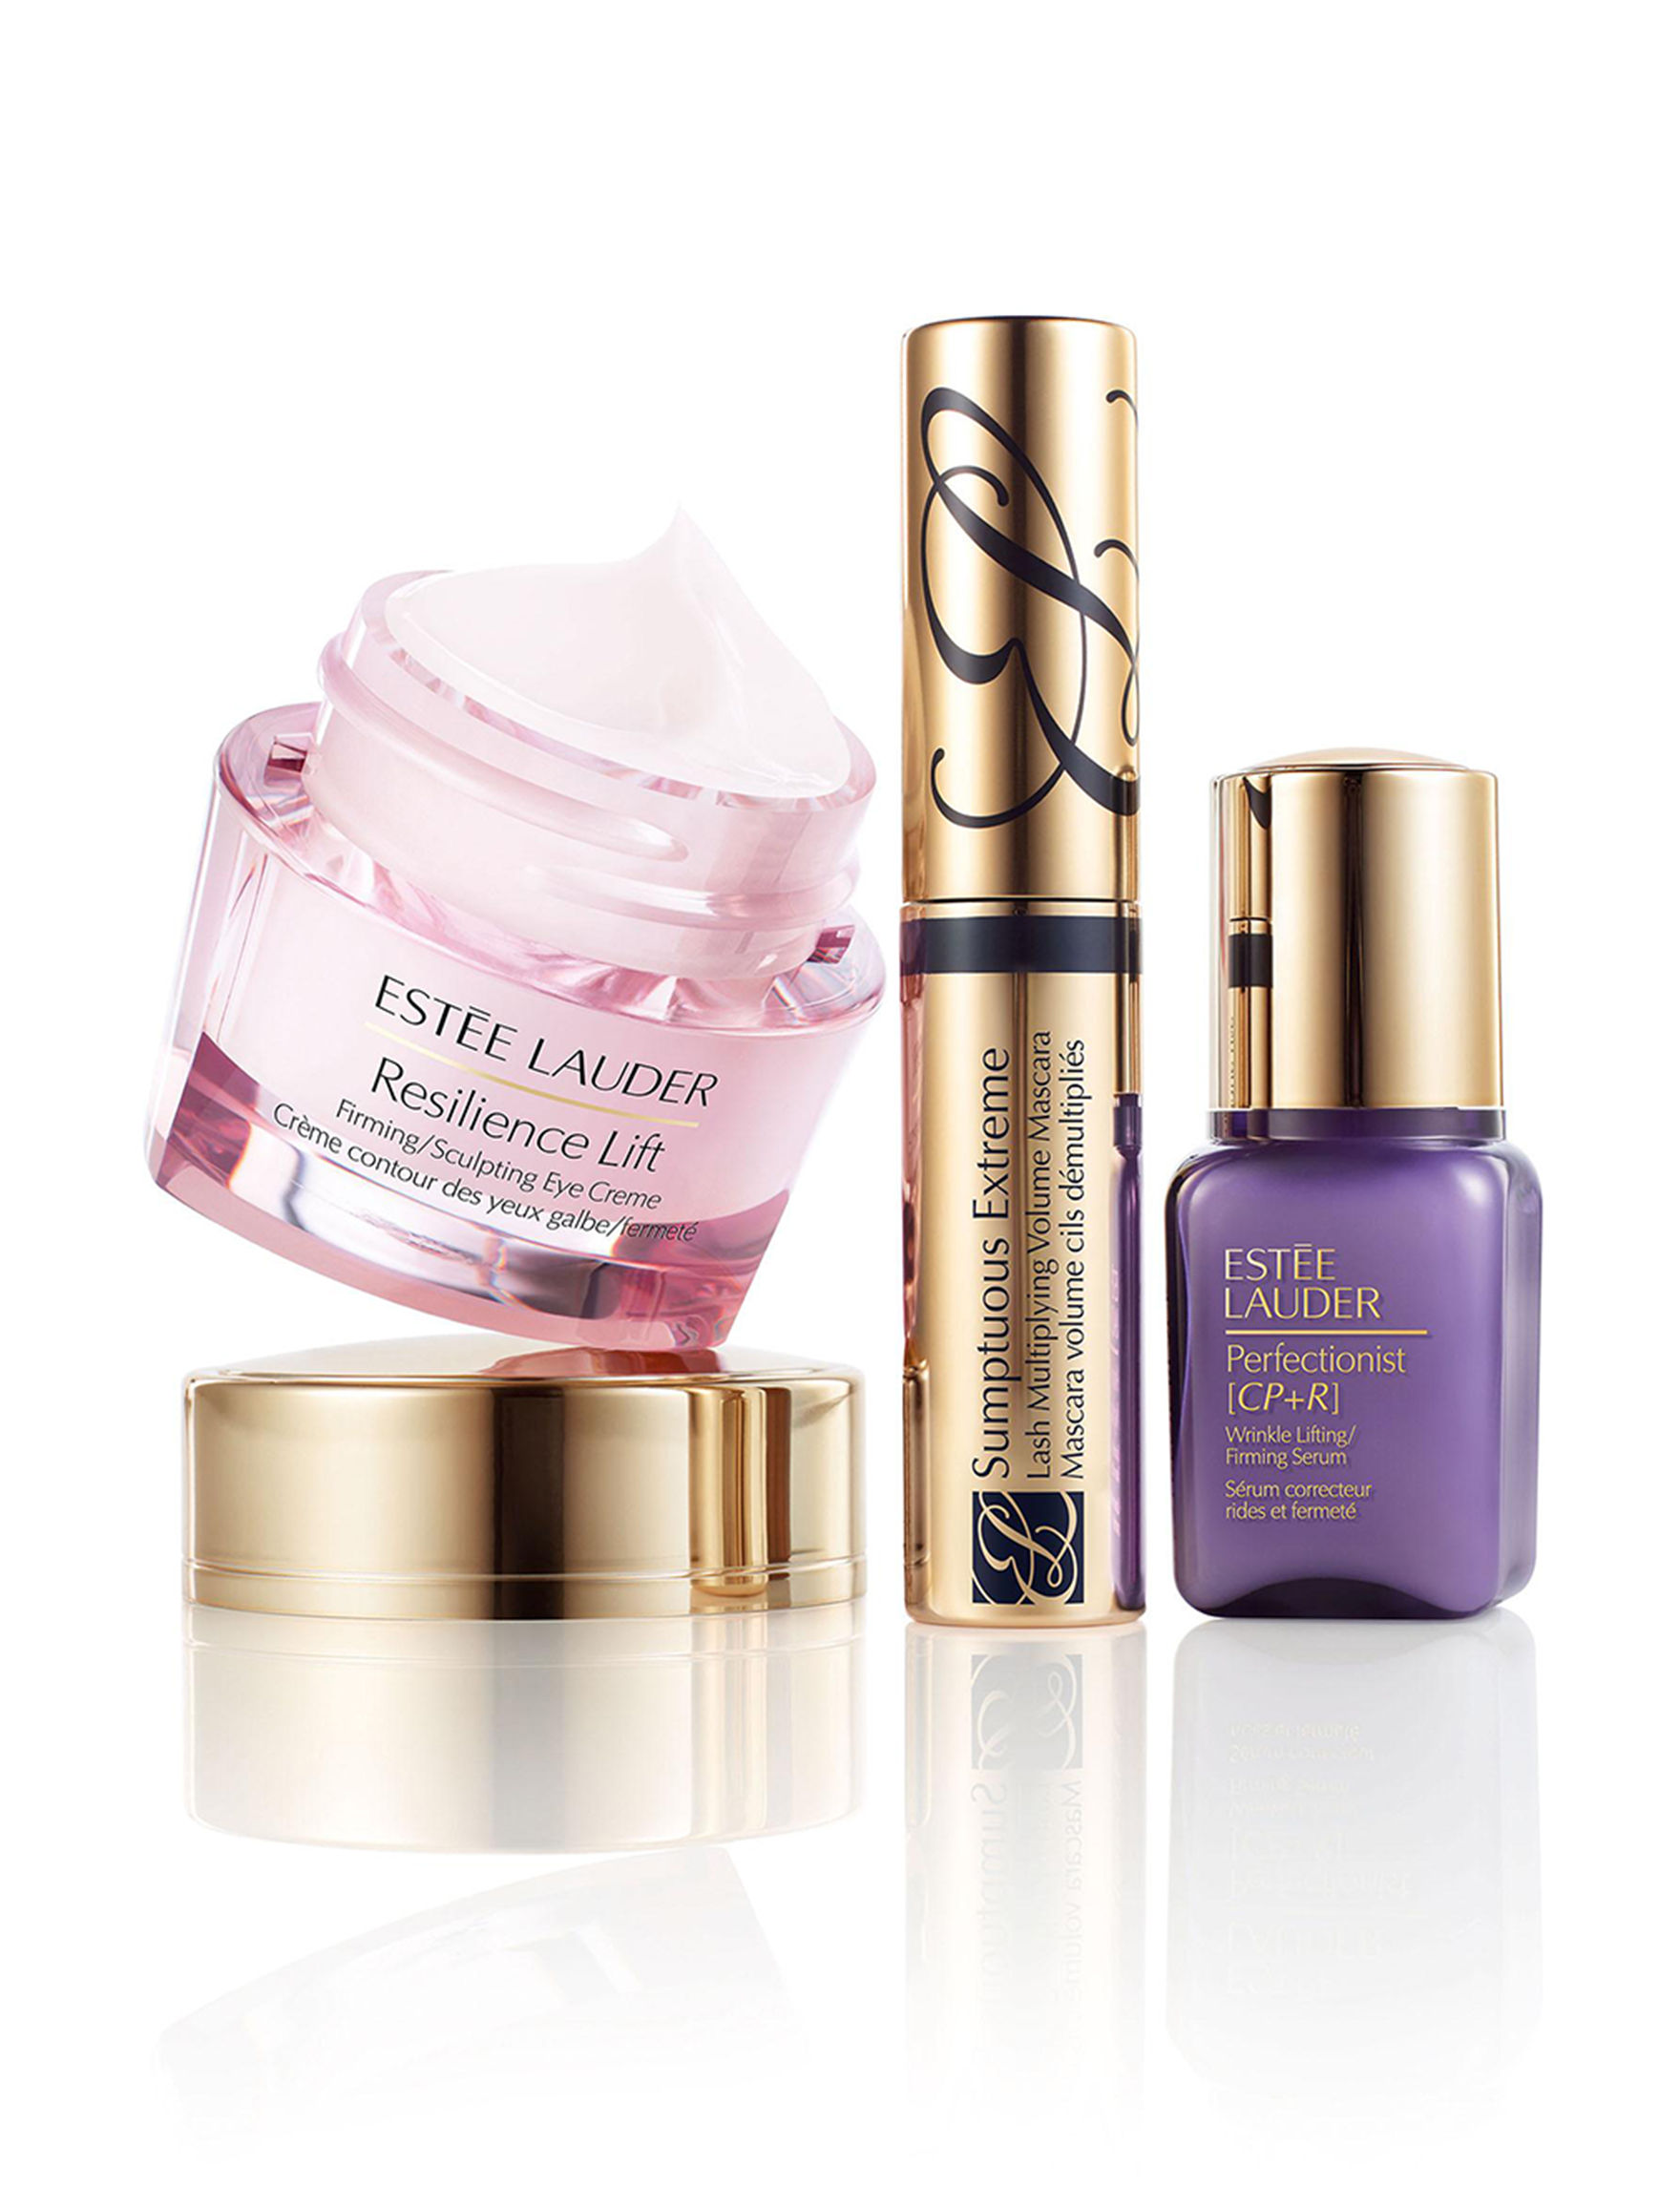 Estee Lauder  Eye Care Skin Care Kits & Sets